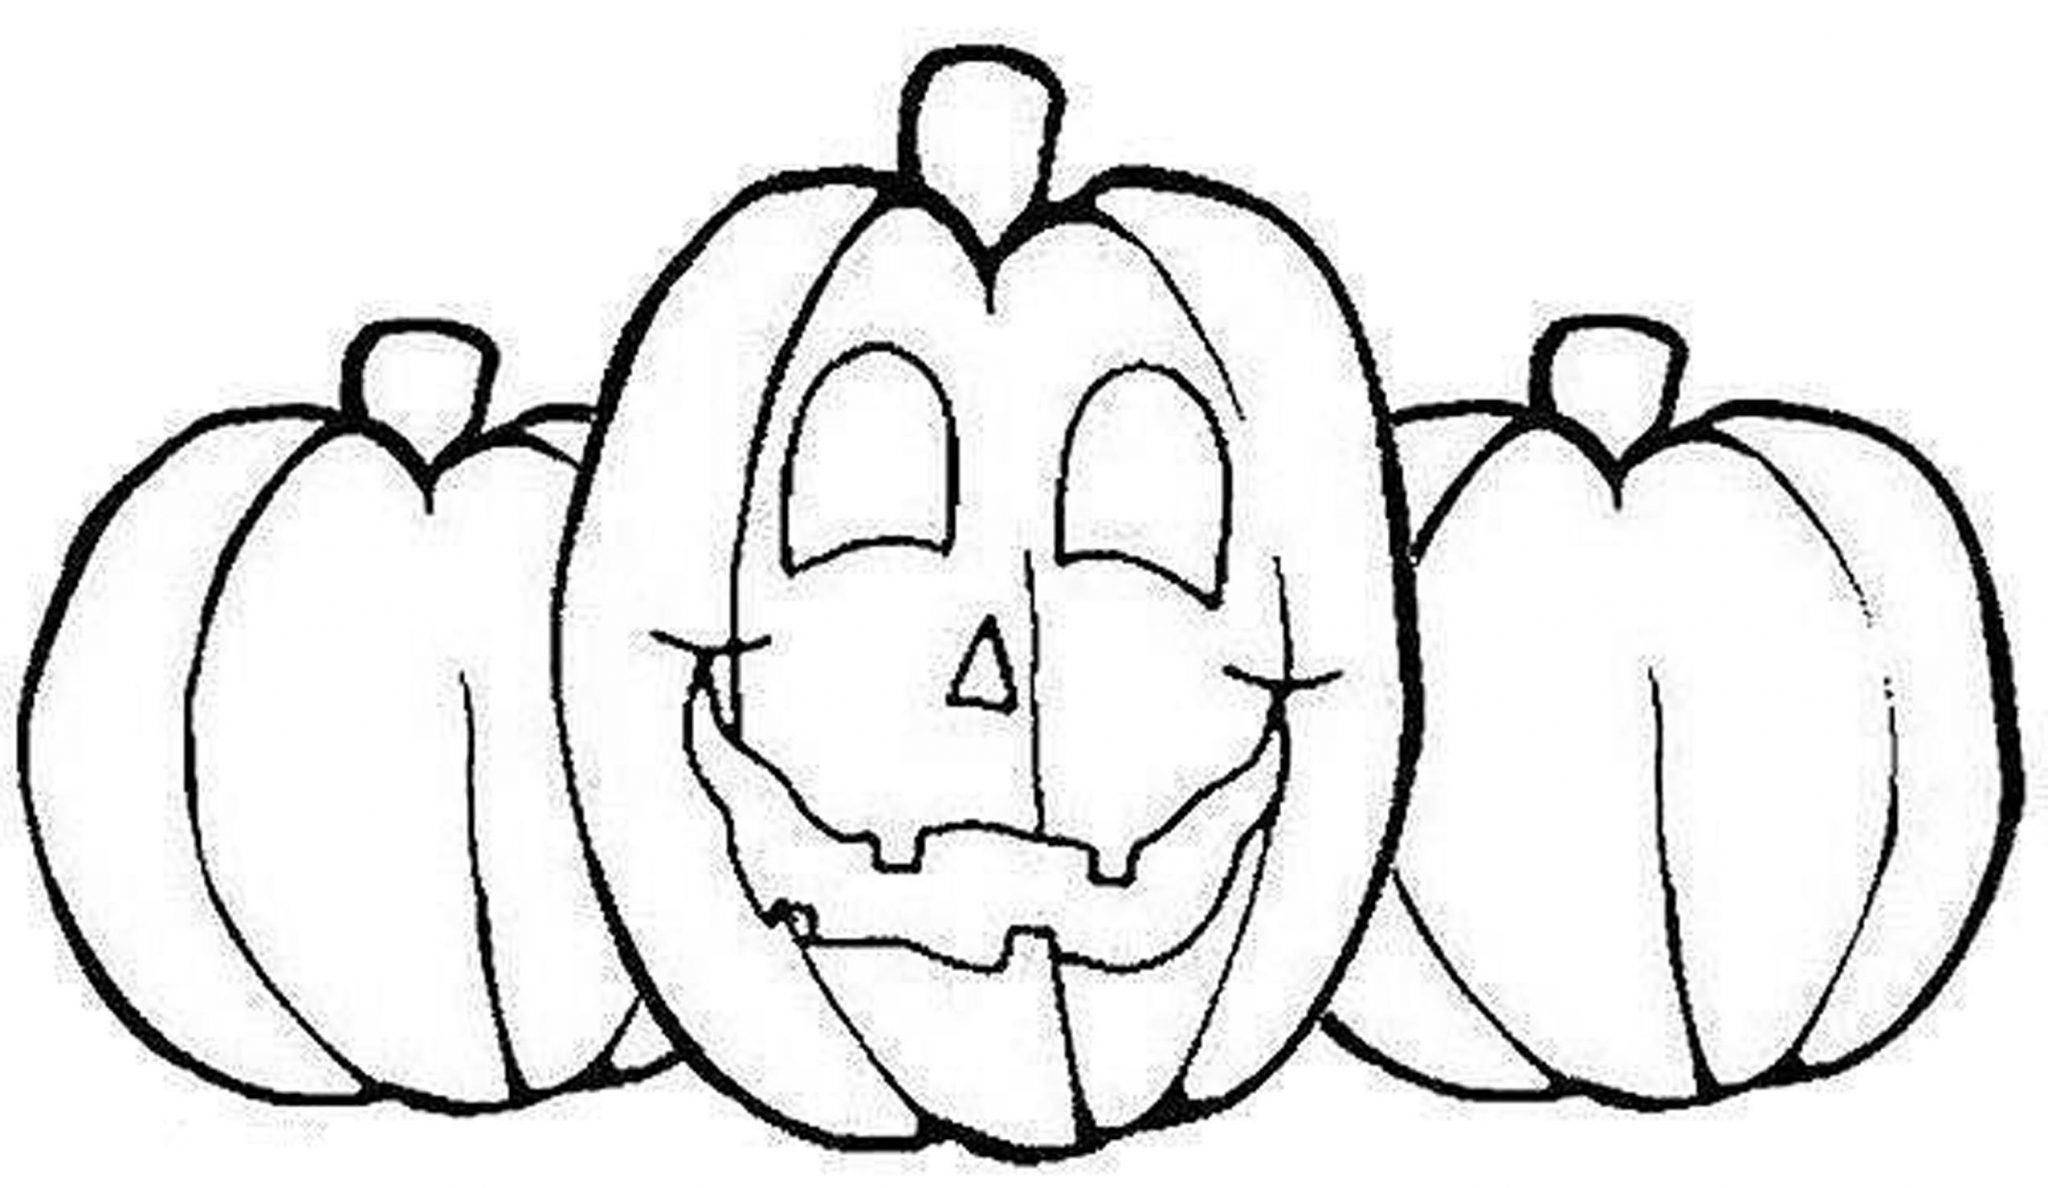 pumpkin coloring pages free printable free printable pumpkin coloring pages for kids cool2bkids free printable pages coloring pumpkin